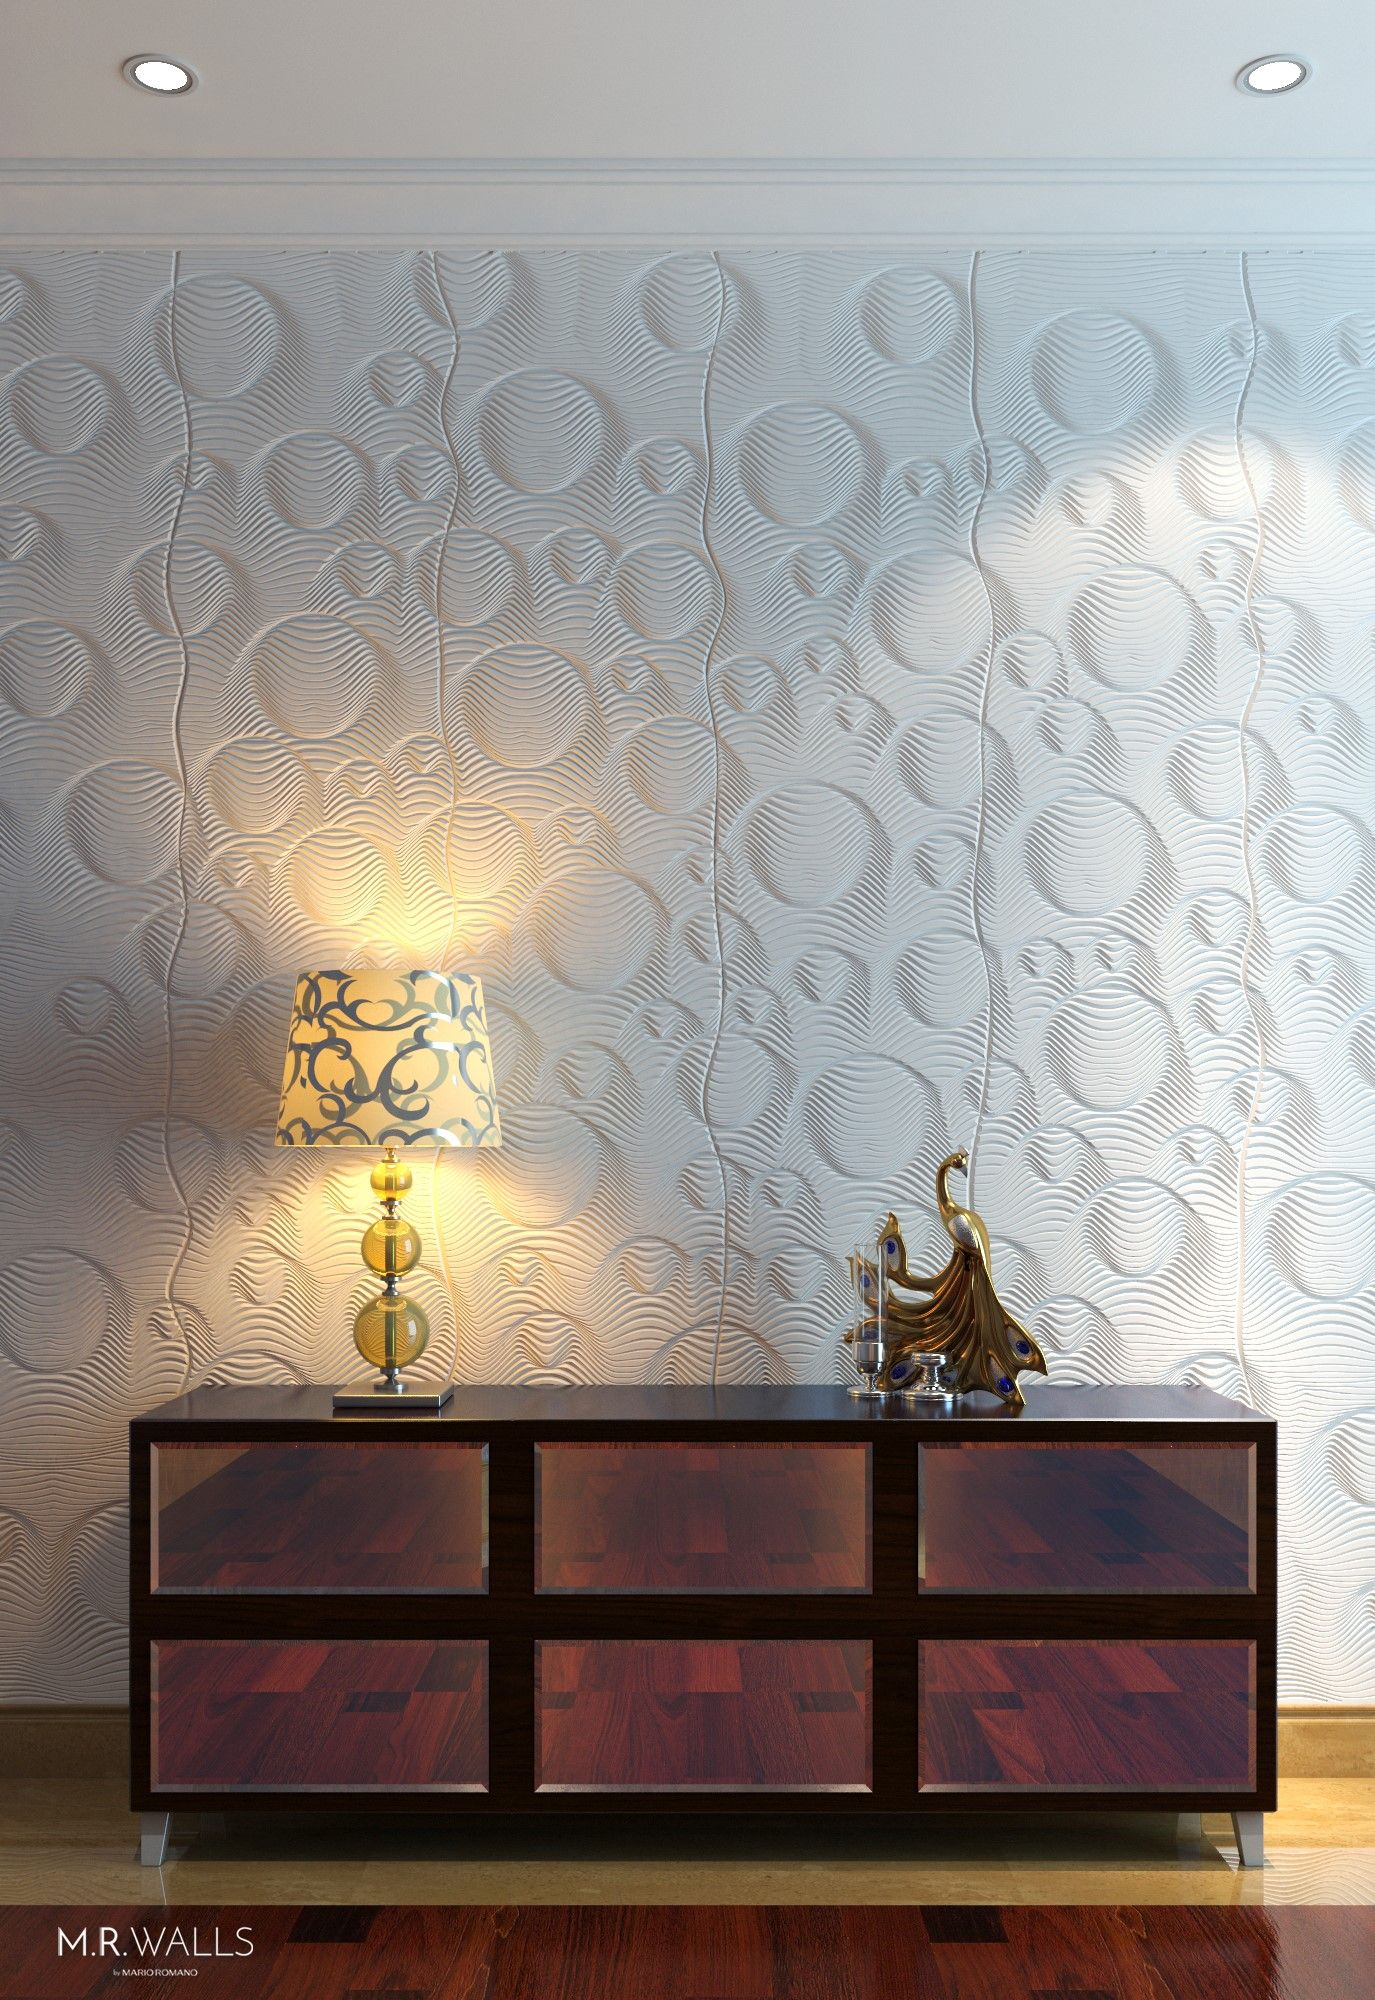 Check Out The Bubbles Wall Paneling By M R Wall Using Corian Wall Paneling Dimensional Wall Wall Design